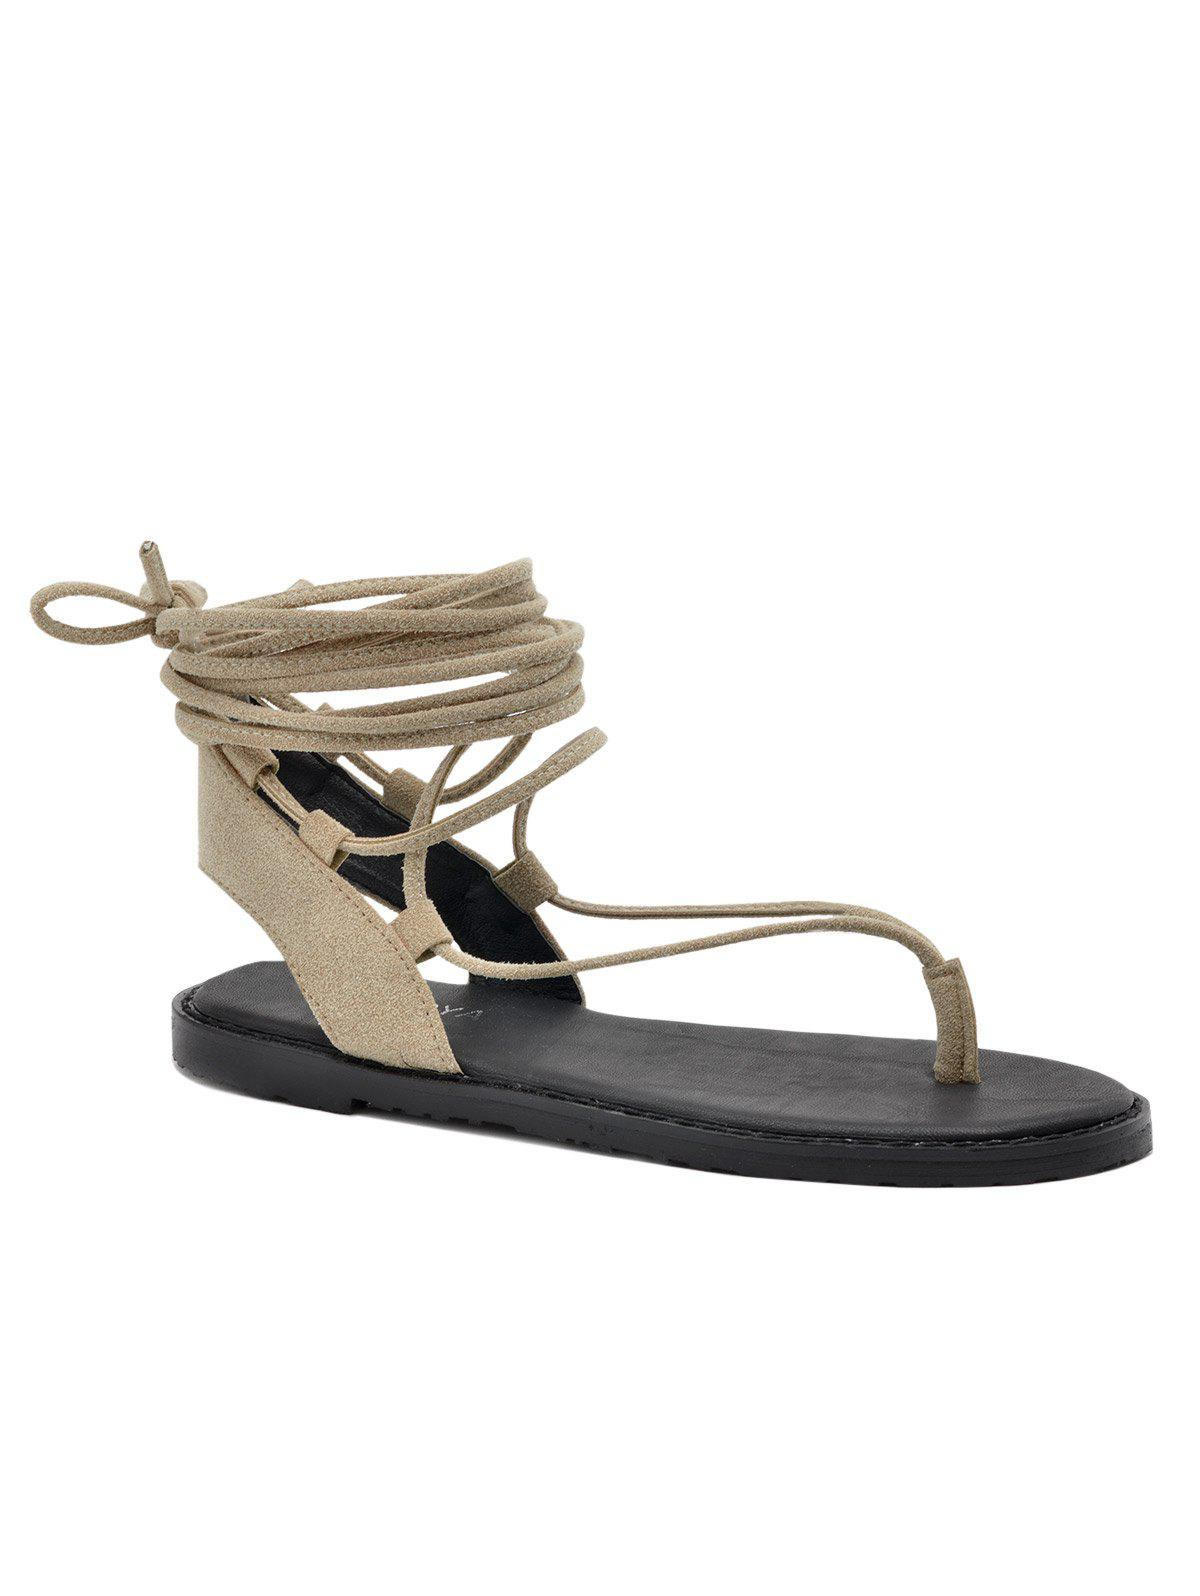 018e9249e28 2019 Chic Lace Up Sandals For Holiday